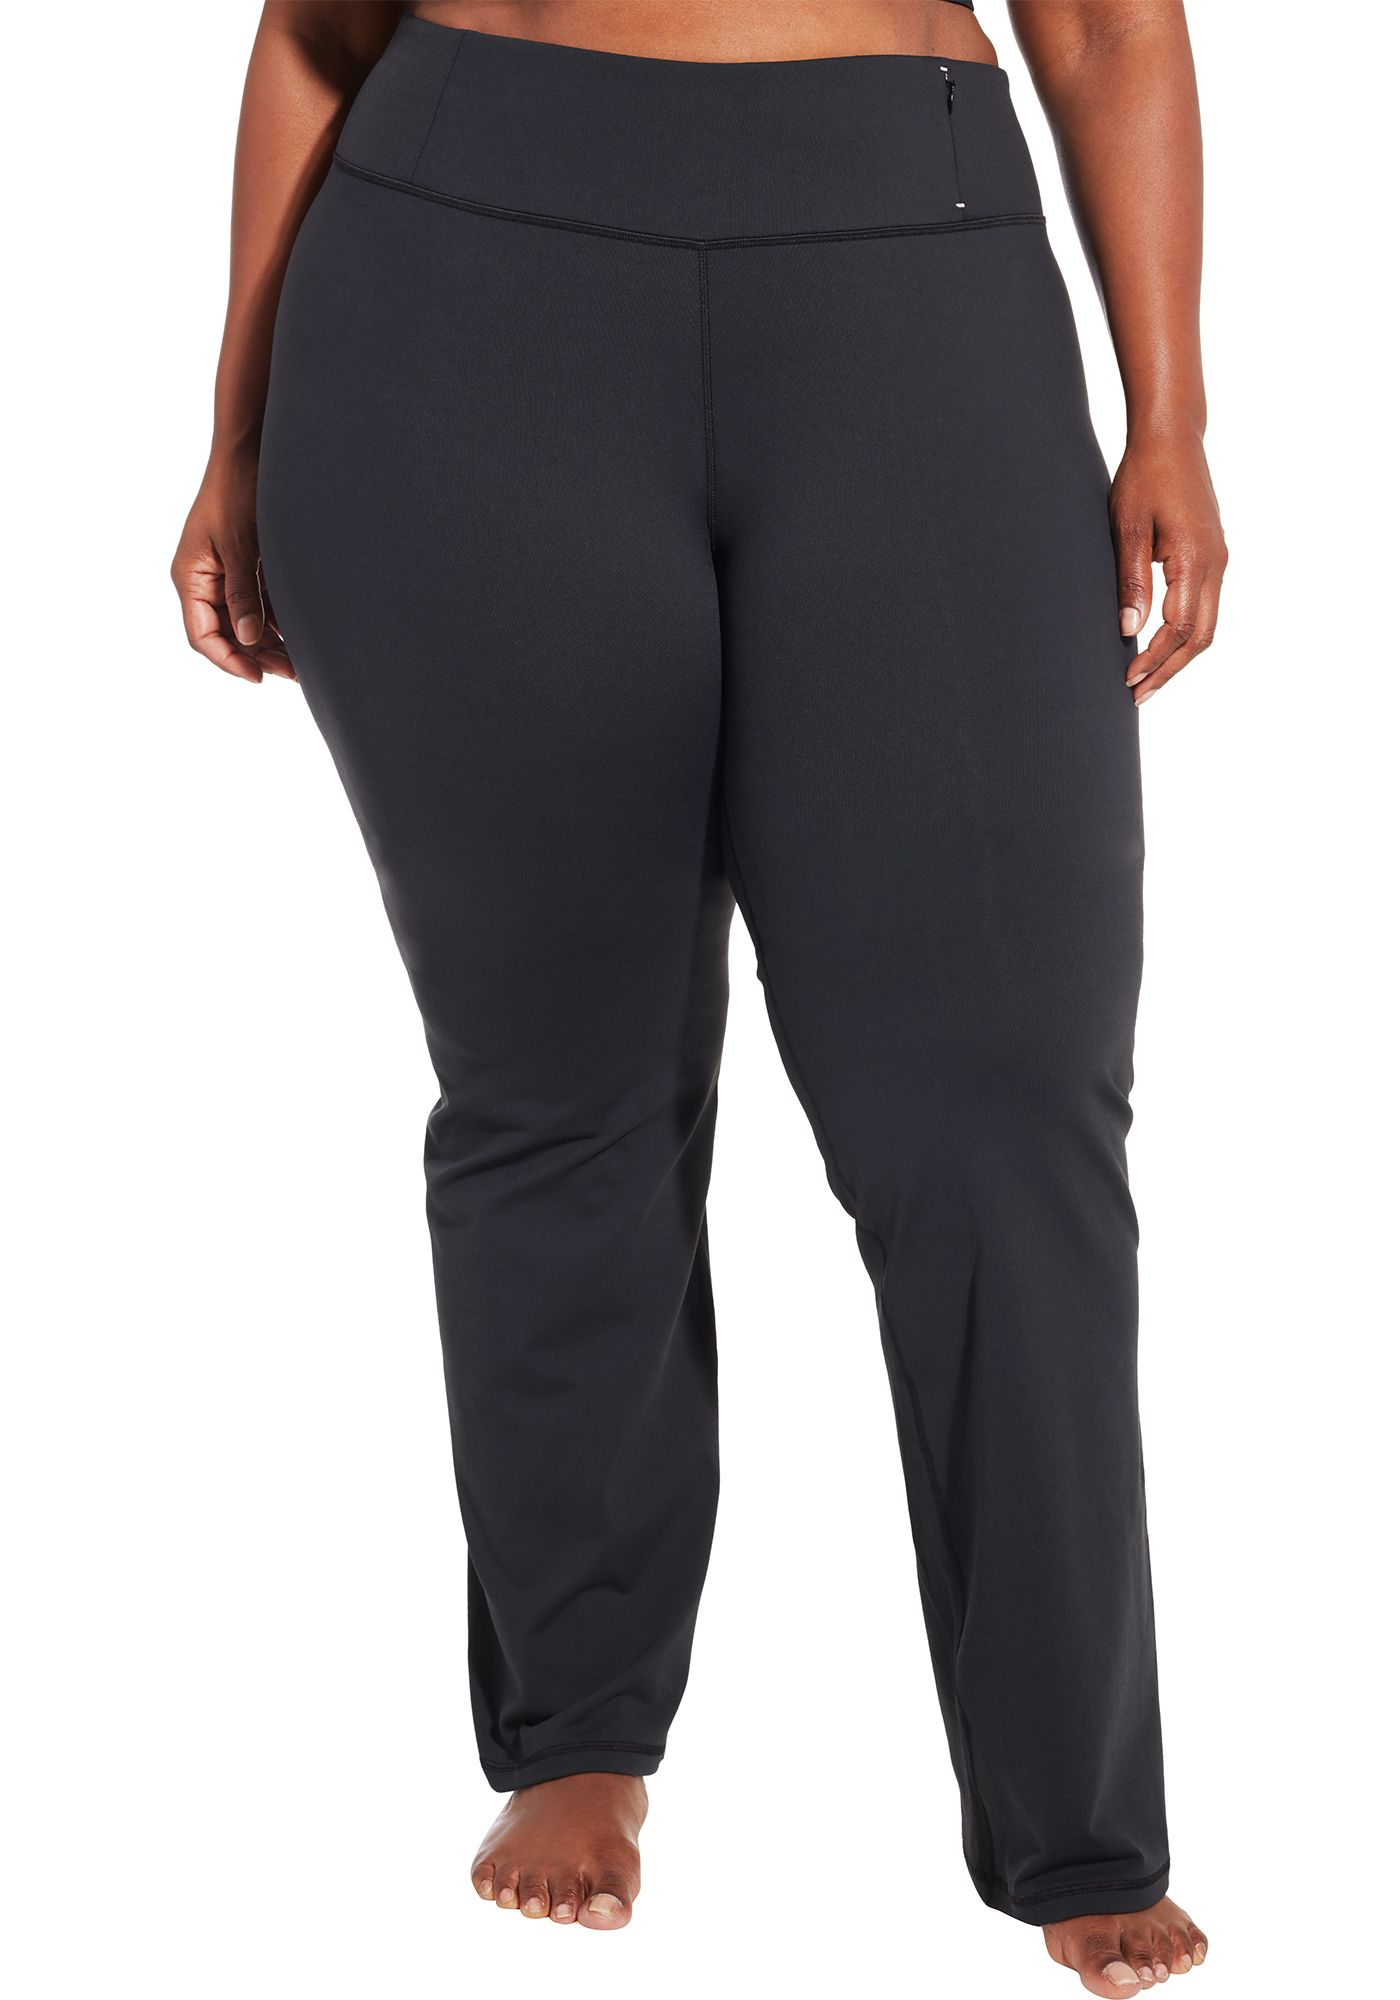 CALIA by Carrie Underwood Women's Plus Size Essential Mid-Rise Pants